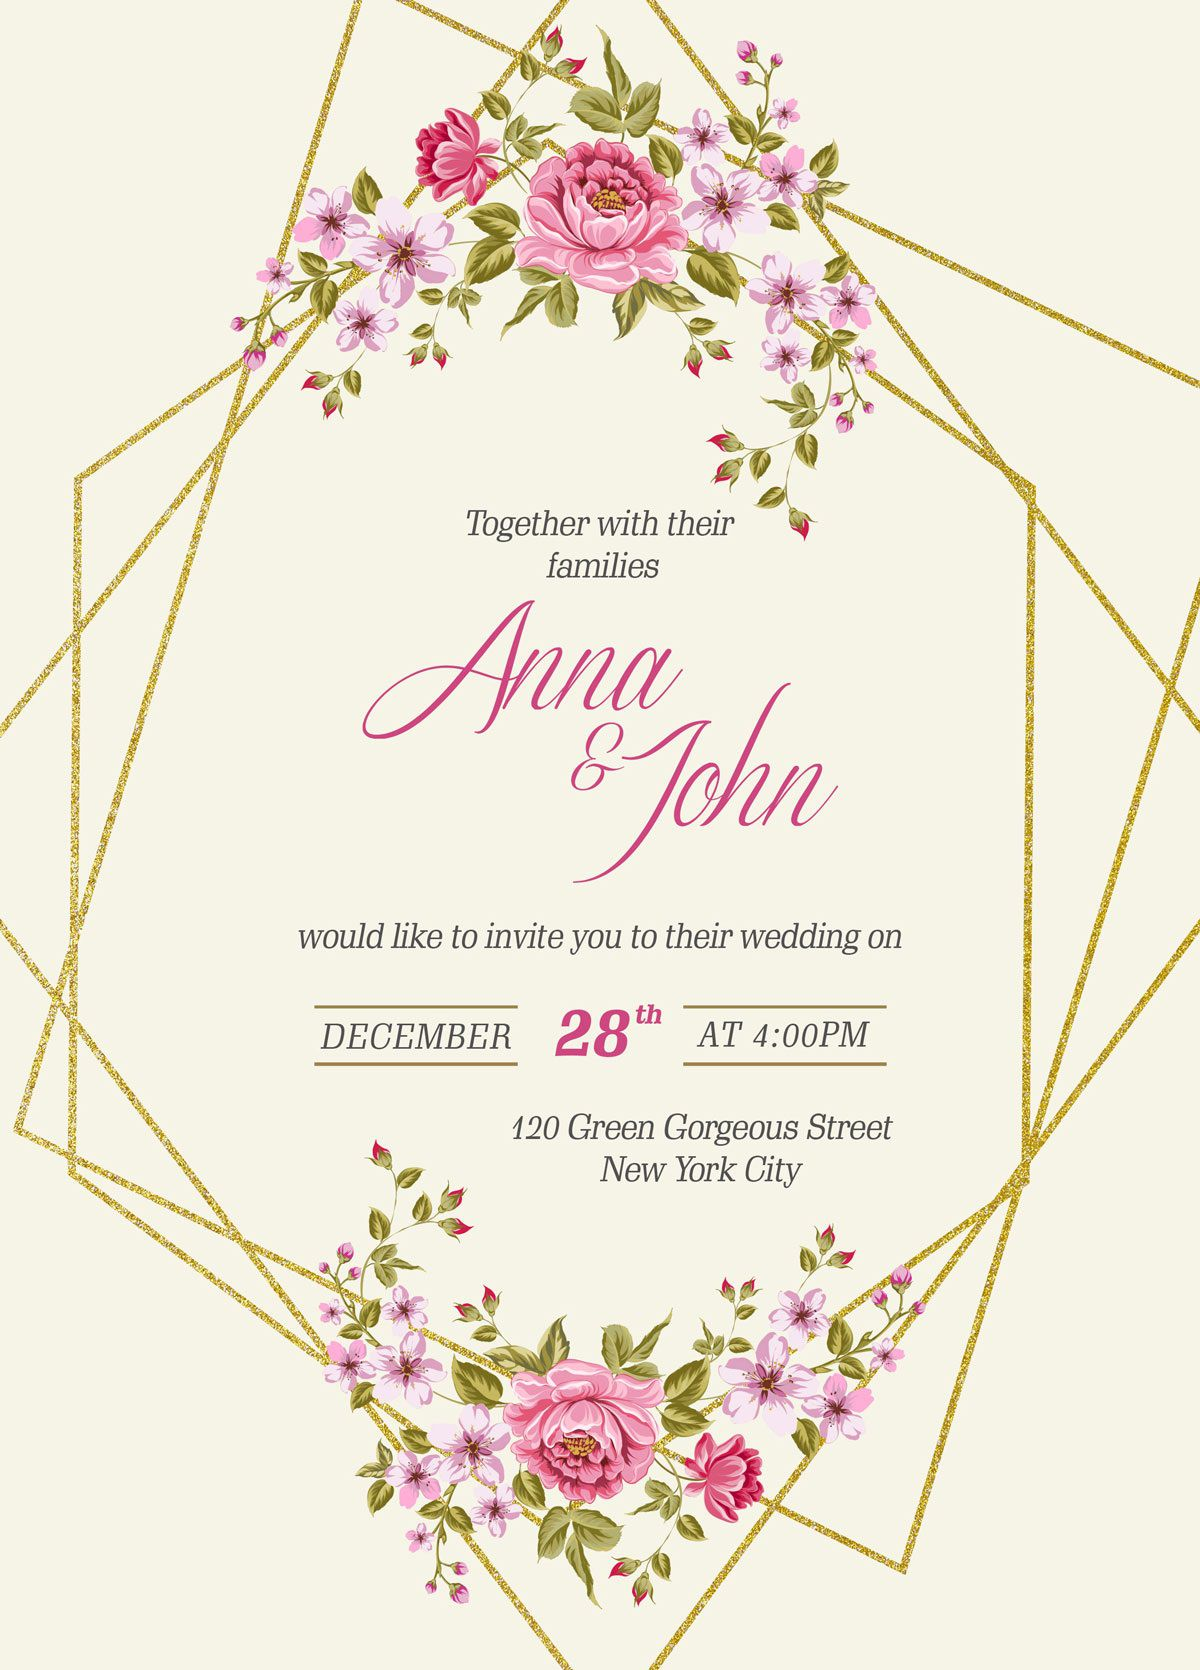 007 Outstanding Free Download Invitation Card Template Psd Image  Indian Wedding BirthdayFull